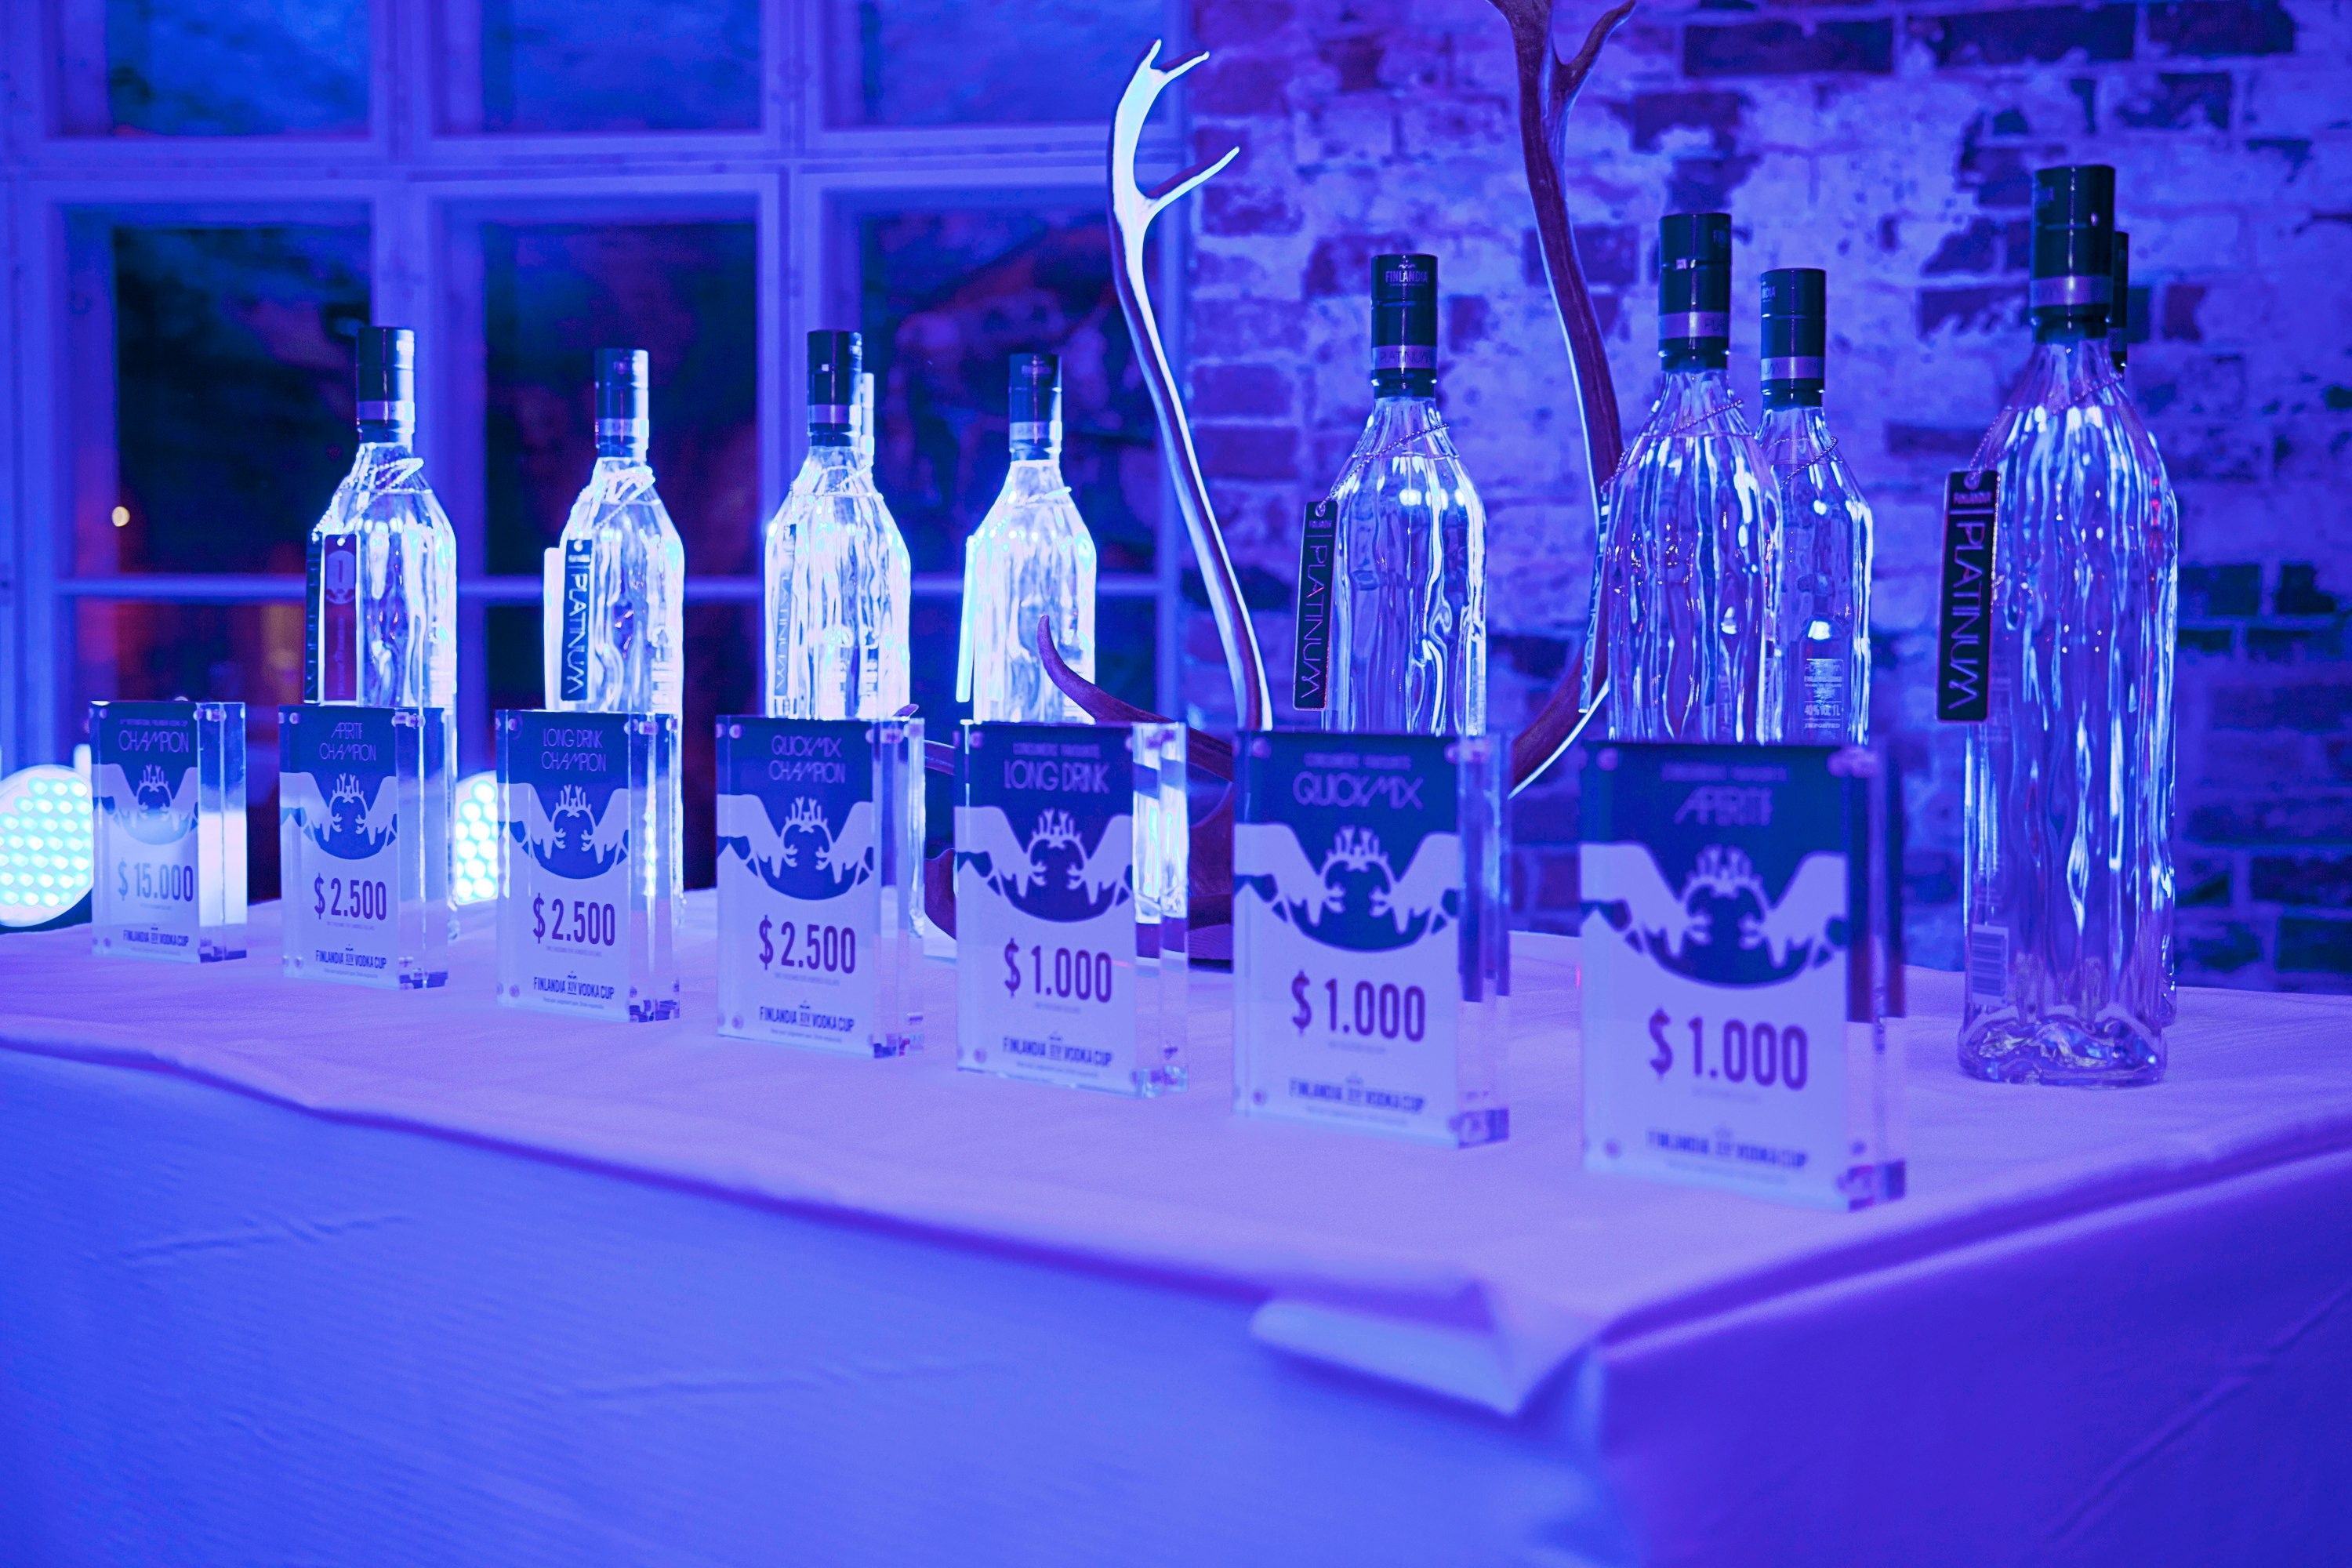 XIV International Finlandia Vodka Cup Finals